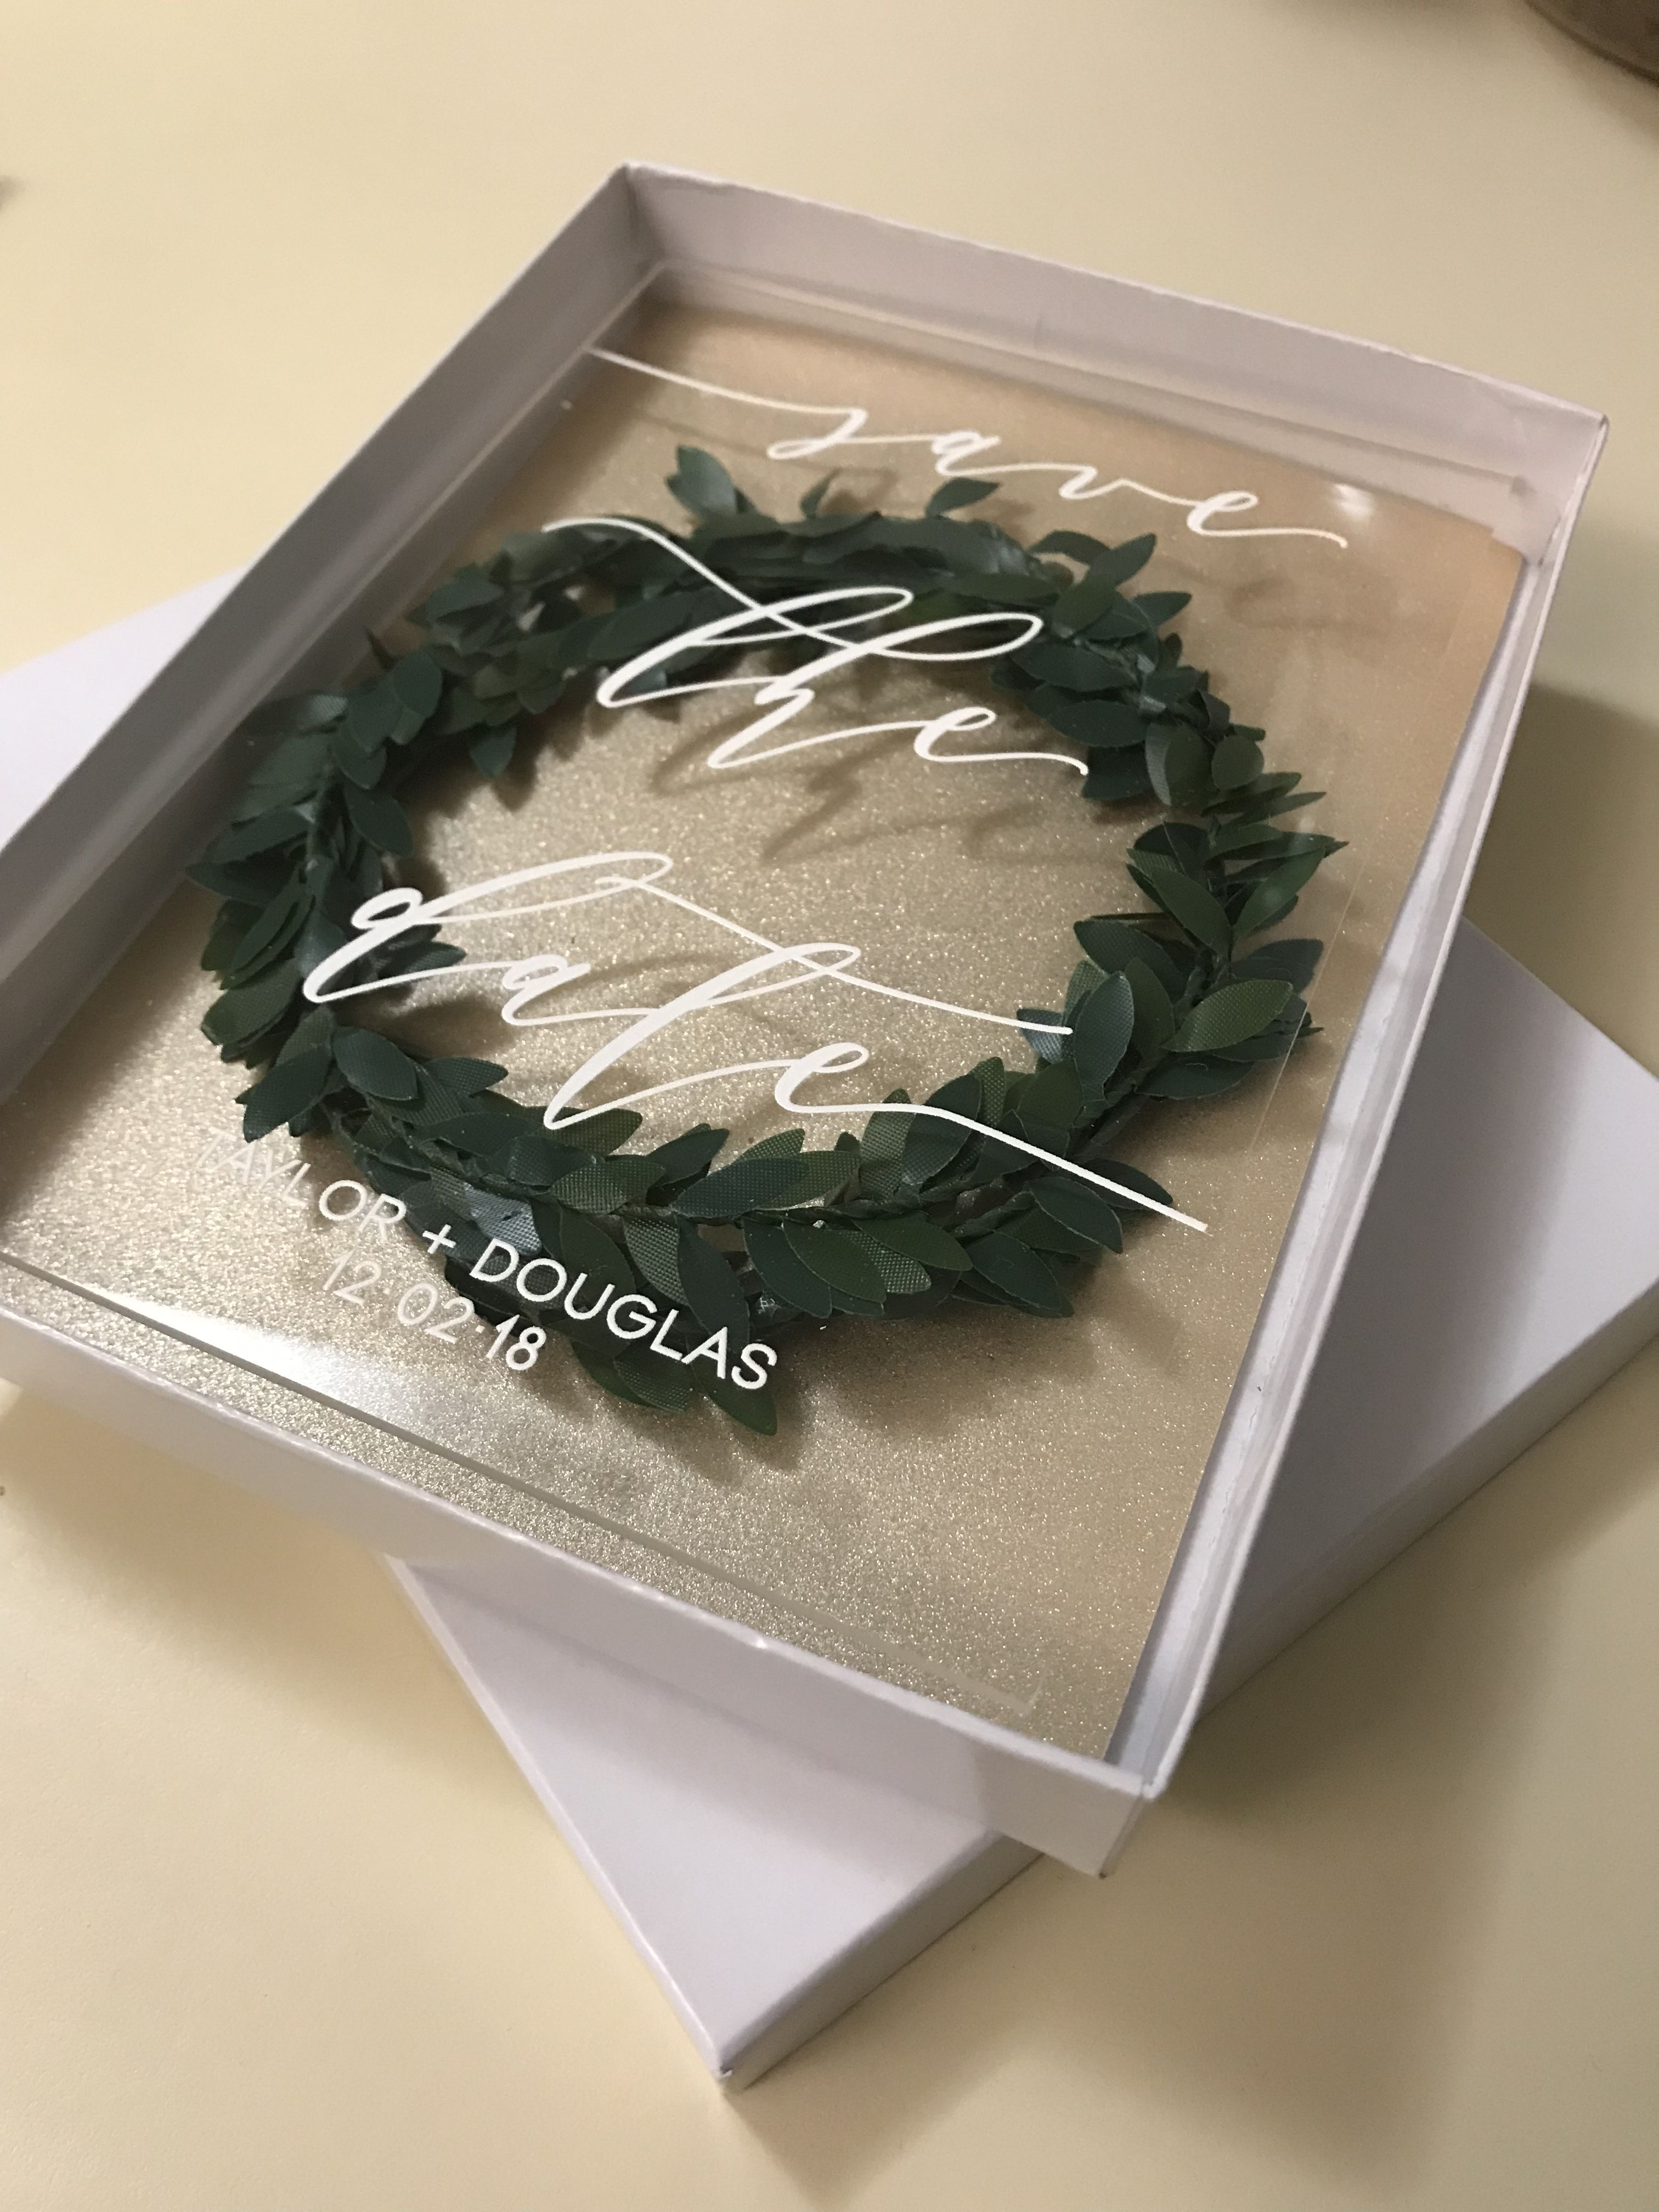 Acrylic Save The Date mailer box DIY rustic winter